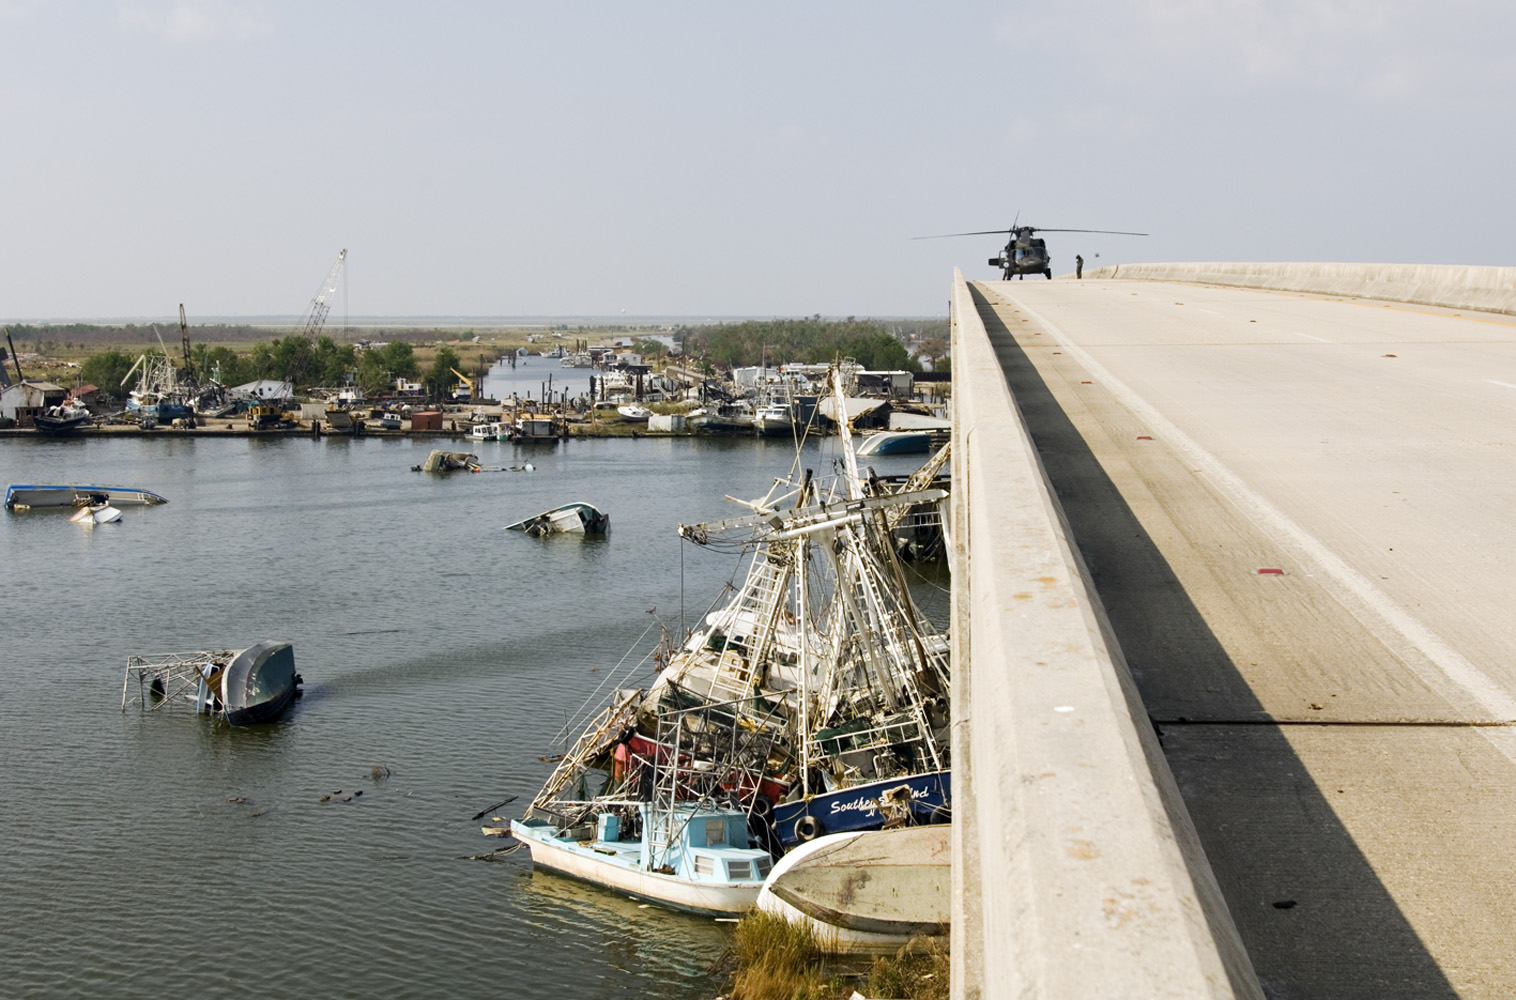 17 September 2005 Empire, Plaquemines Parish, Louisiana, USA. Black Hawk helicopter lands on the bridge for surveillance.  Shrimp, Oyster and Menhaden boats thrown around in the harbour of Empire after a 33-foot storm surge accompanying Hurricane Katrina. The entire fishing fleet is wiped out.